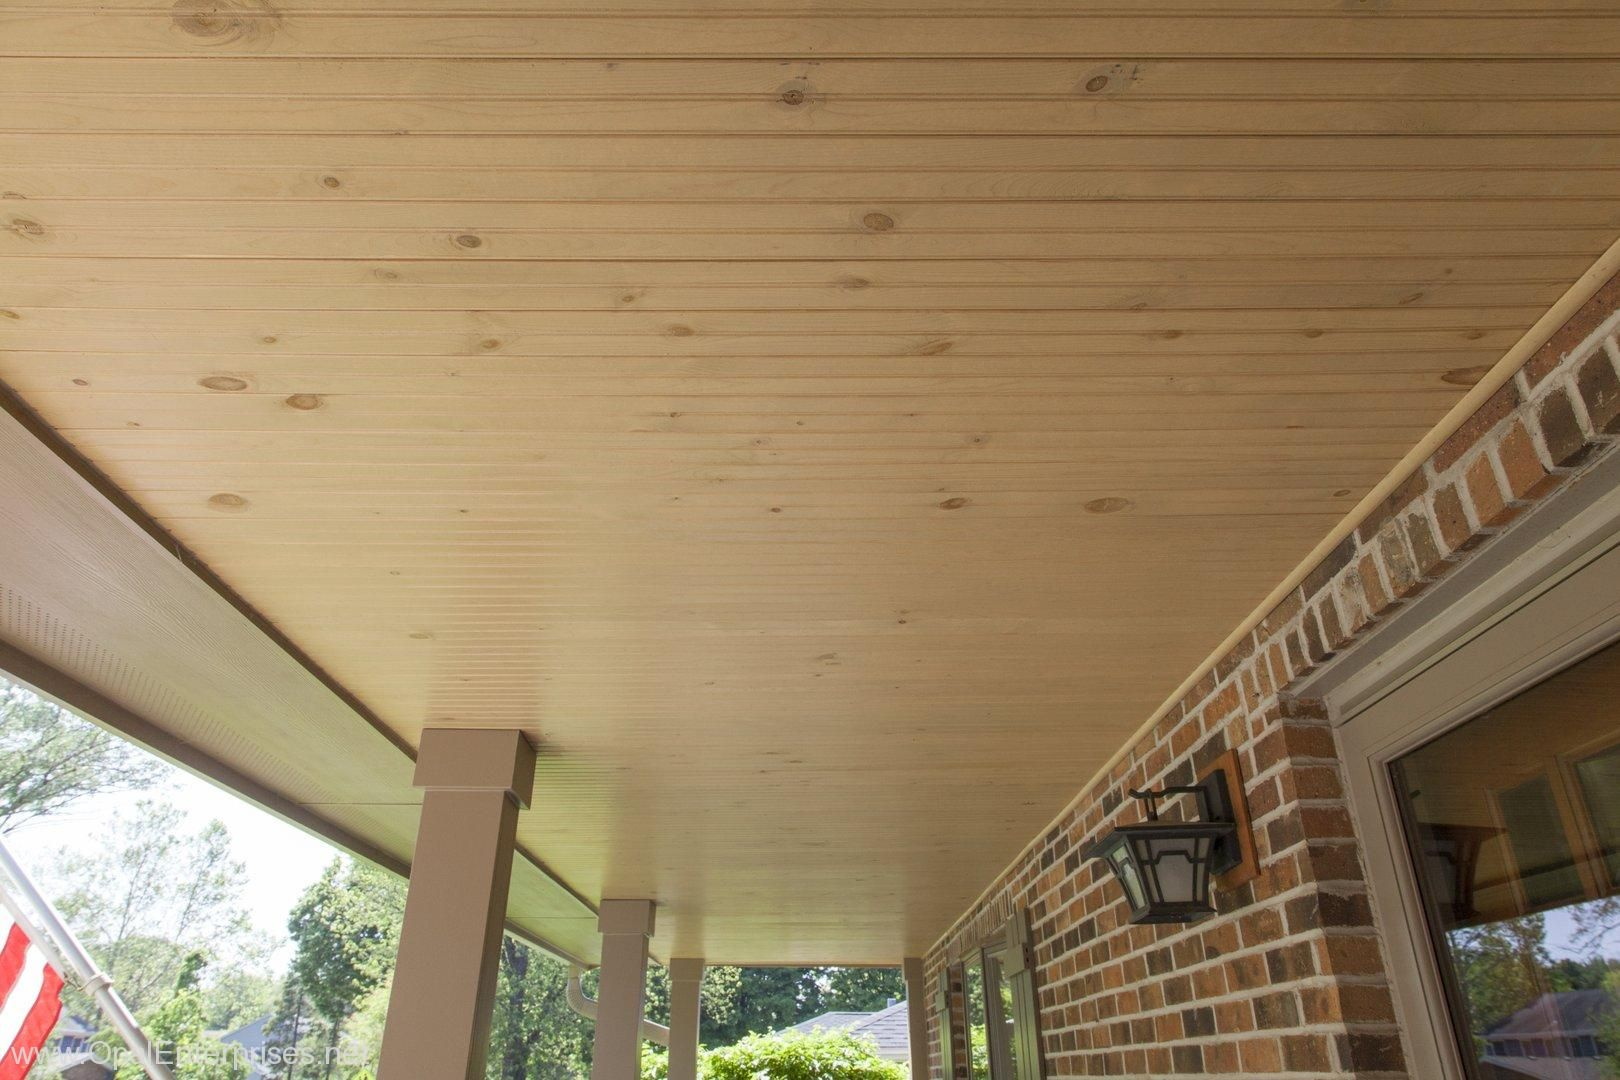 Cement Board Ceiling : Wooden porch ceiling installed by opal enterprises in